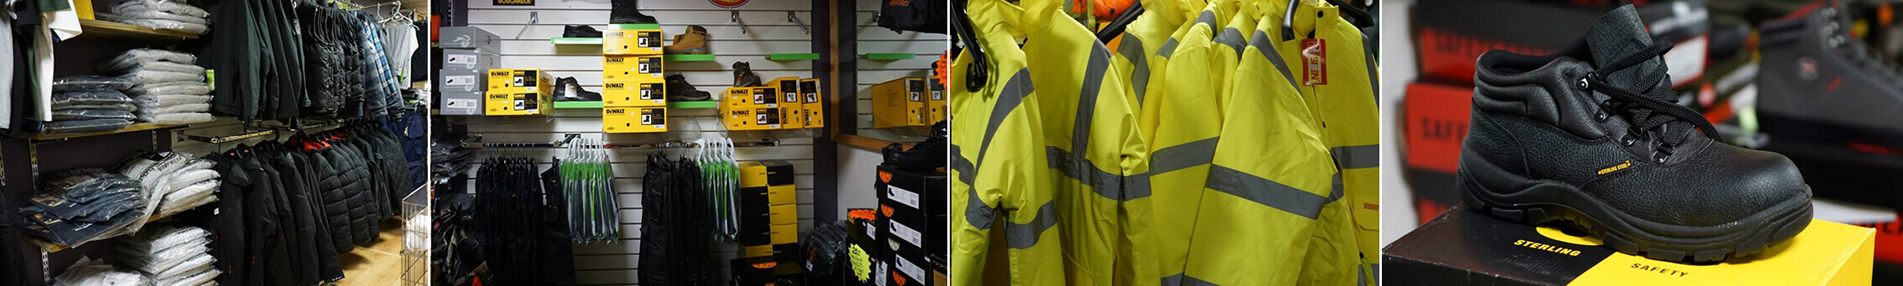 Workwear Clothing & PPE Supplies